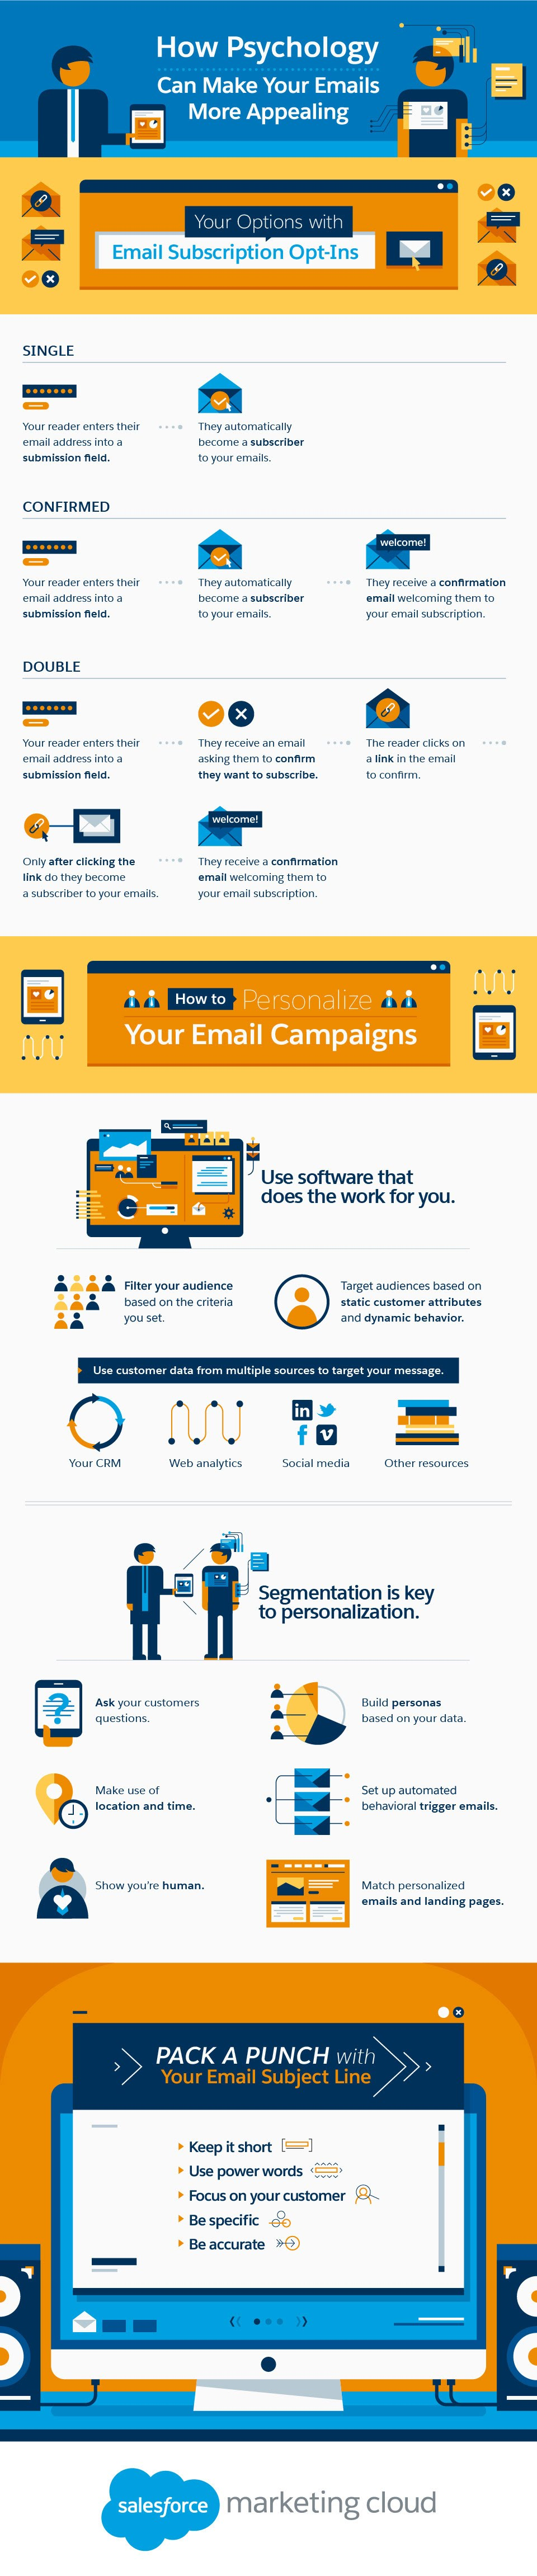 How Psychology Can Make Your Emails More Appealing - #infographic